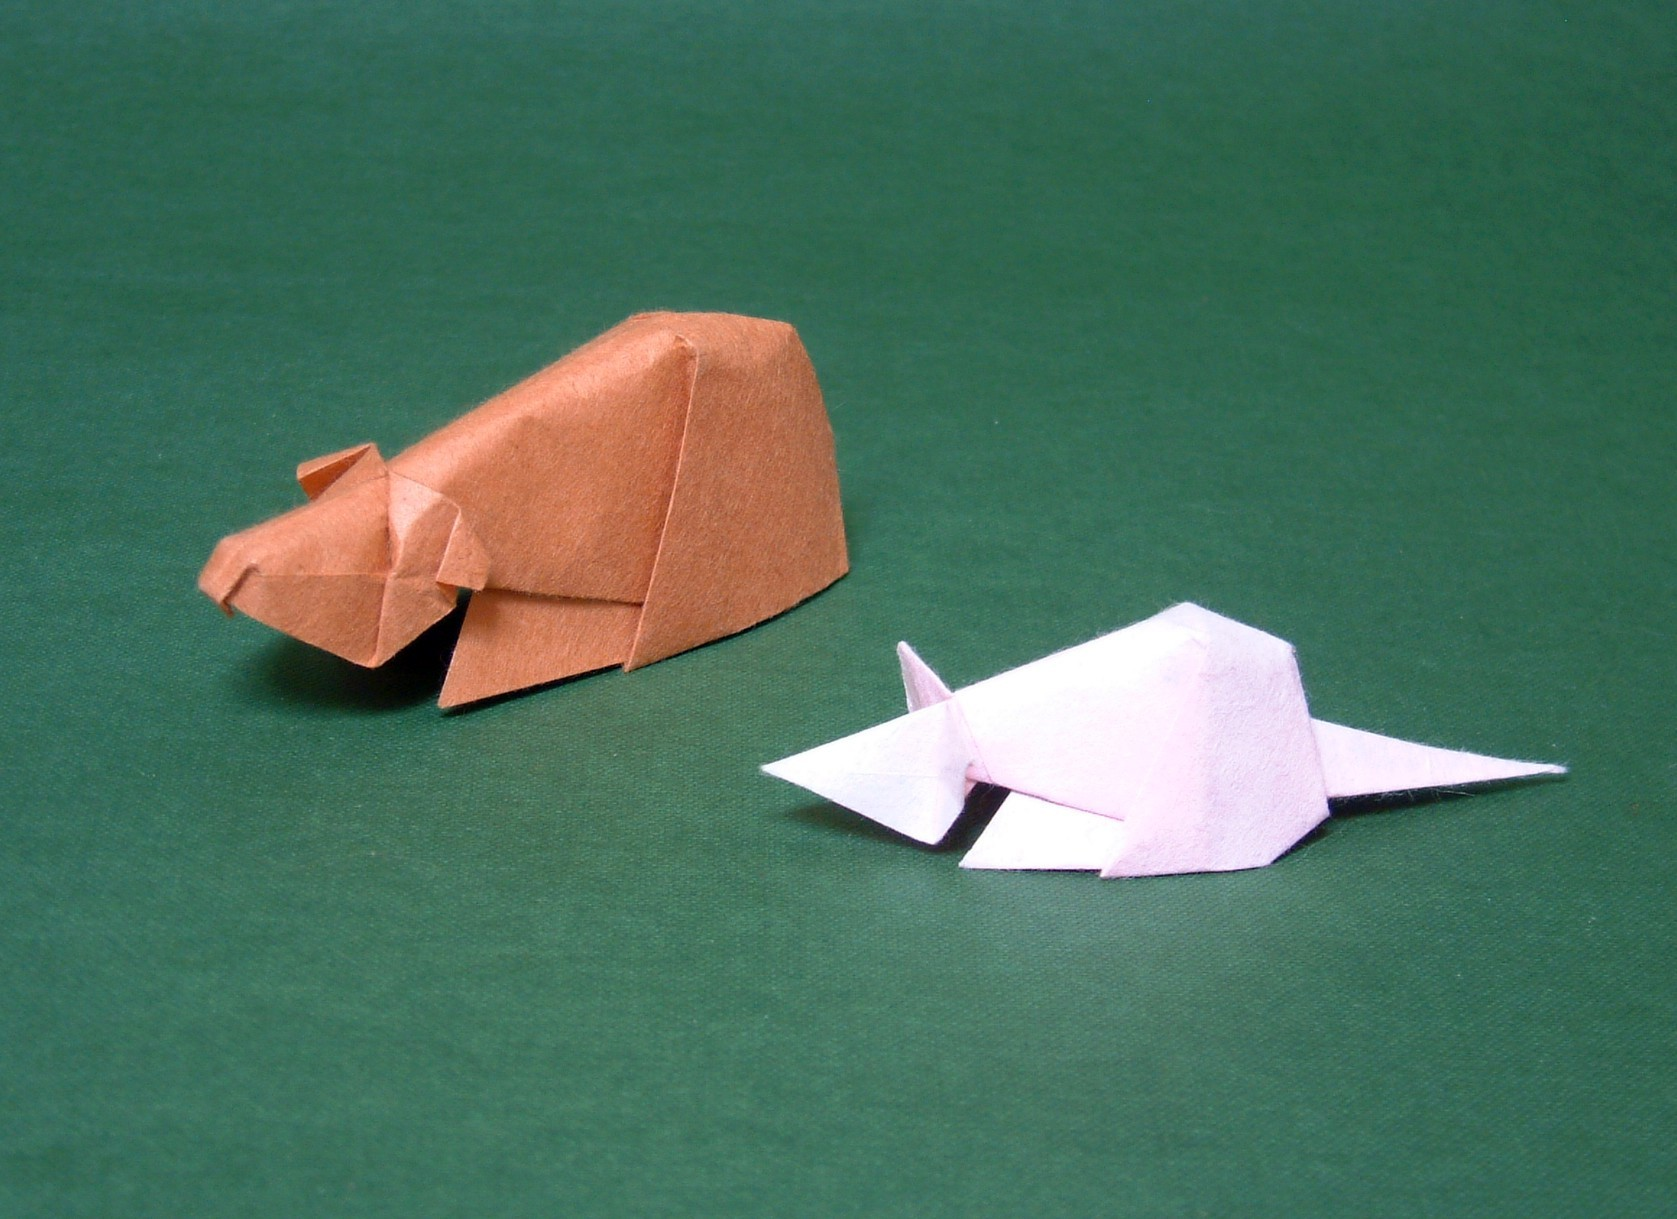 Guinea Pig And Mouse David Brill To Fold Origami From The Paper Diagram Of Themouse